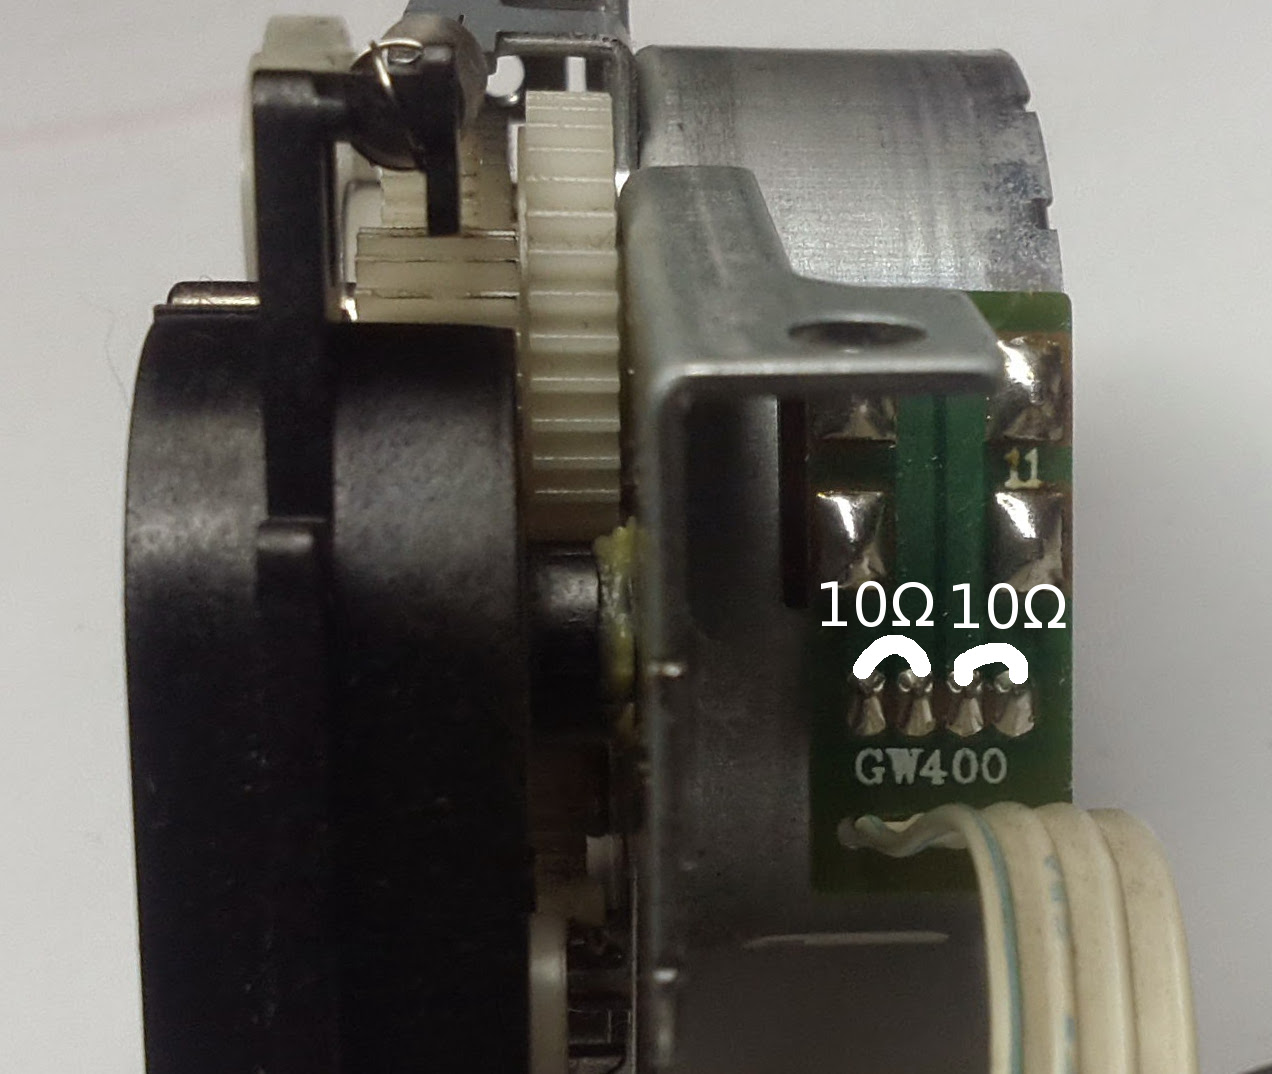 https://blog.rot13.org/2014/11/02/stepper-coils.jpg